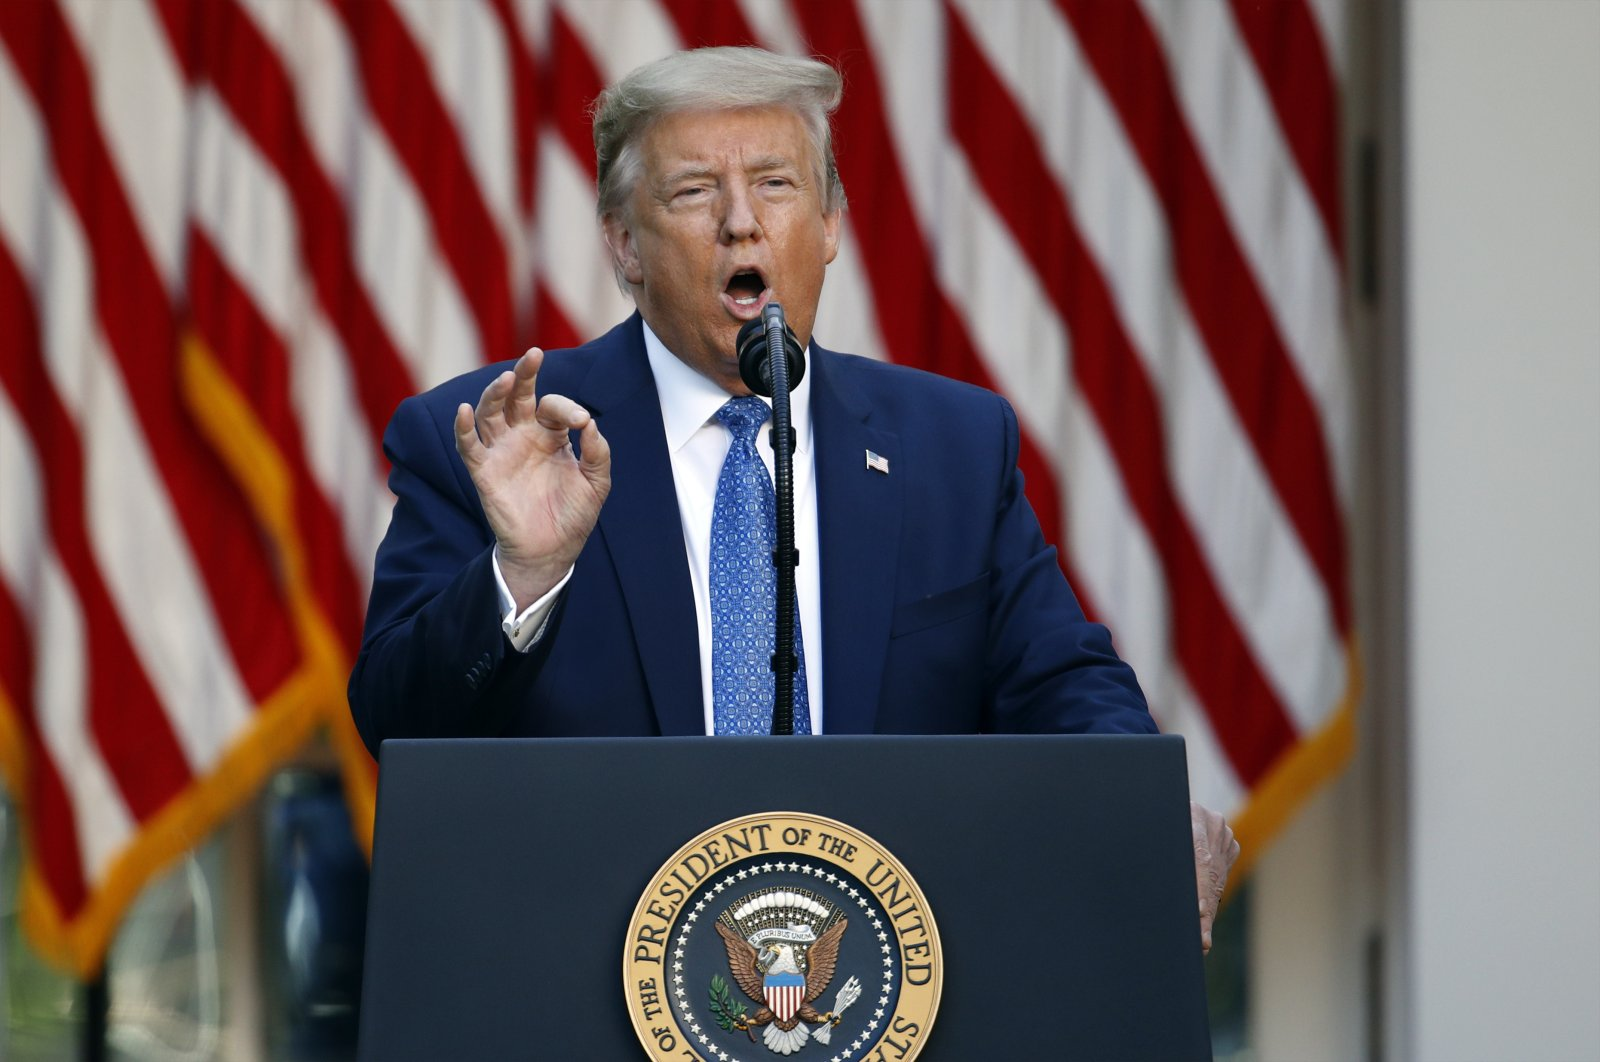 President Donald Trump speaks in the Rose Garden of the White House, Monday, June 1, 2020, in Washington. (AP Photo)